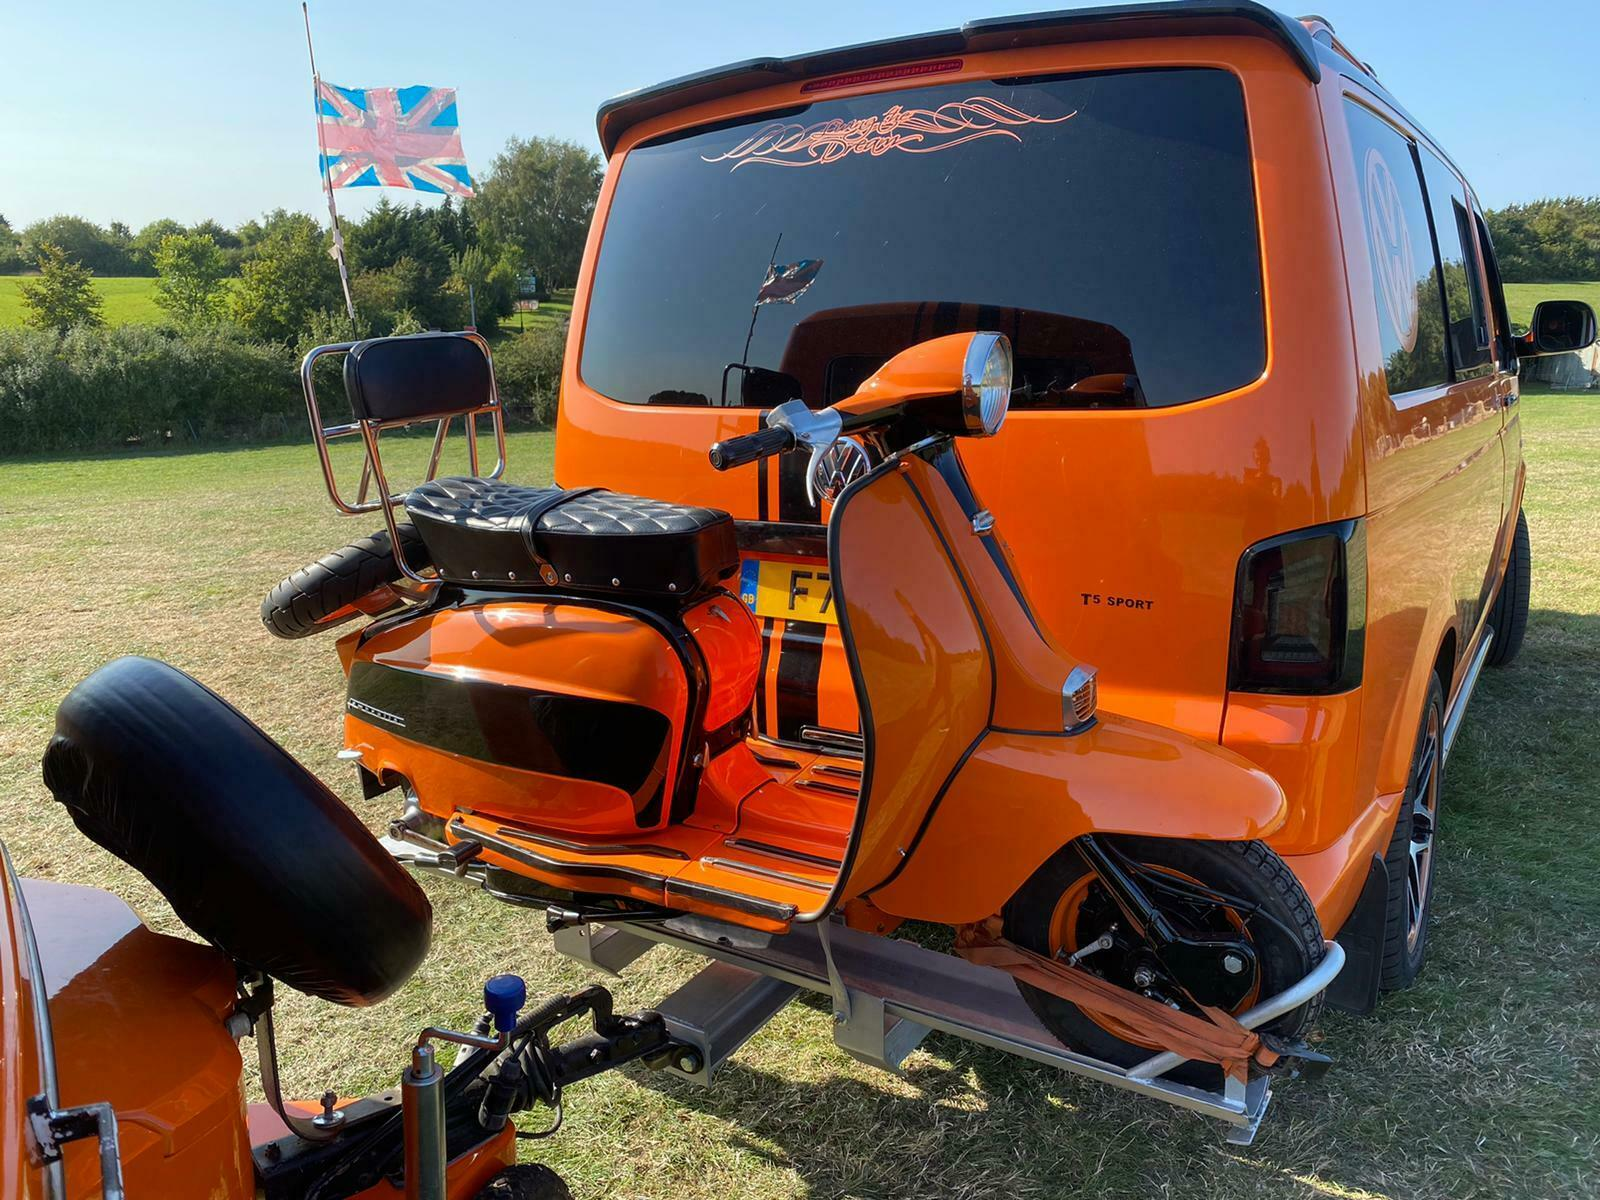 The Ultimate Bogof Buy This Lambretta And Get A Free Vw Transporter Camper Oh And A Caravan Lambrettista Net